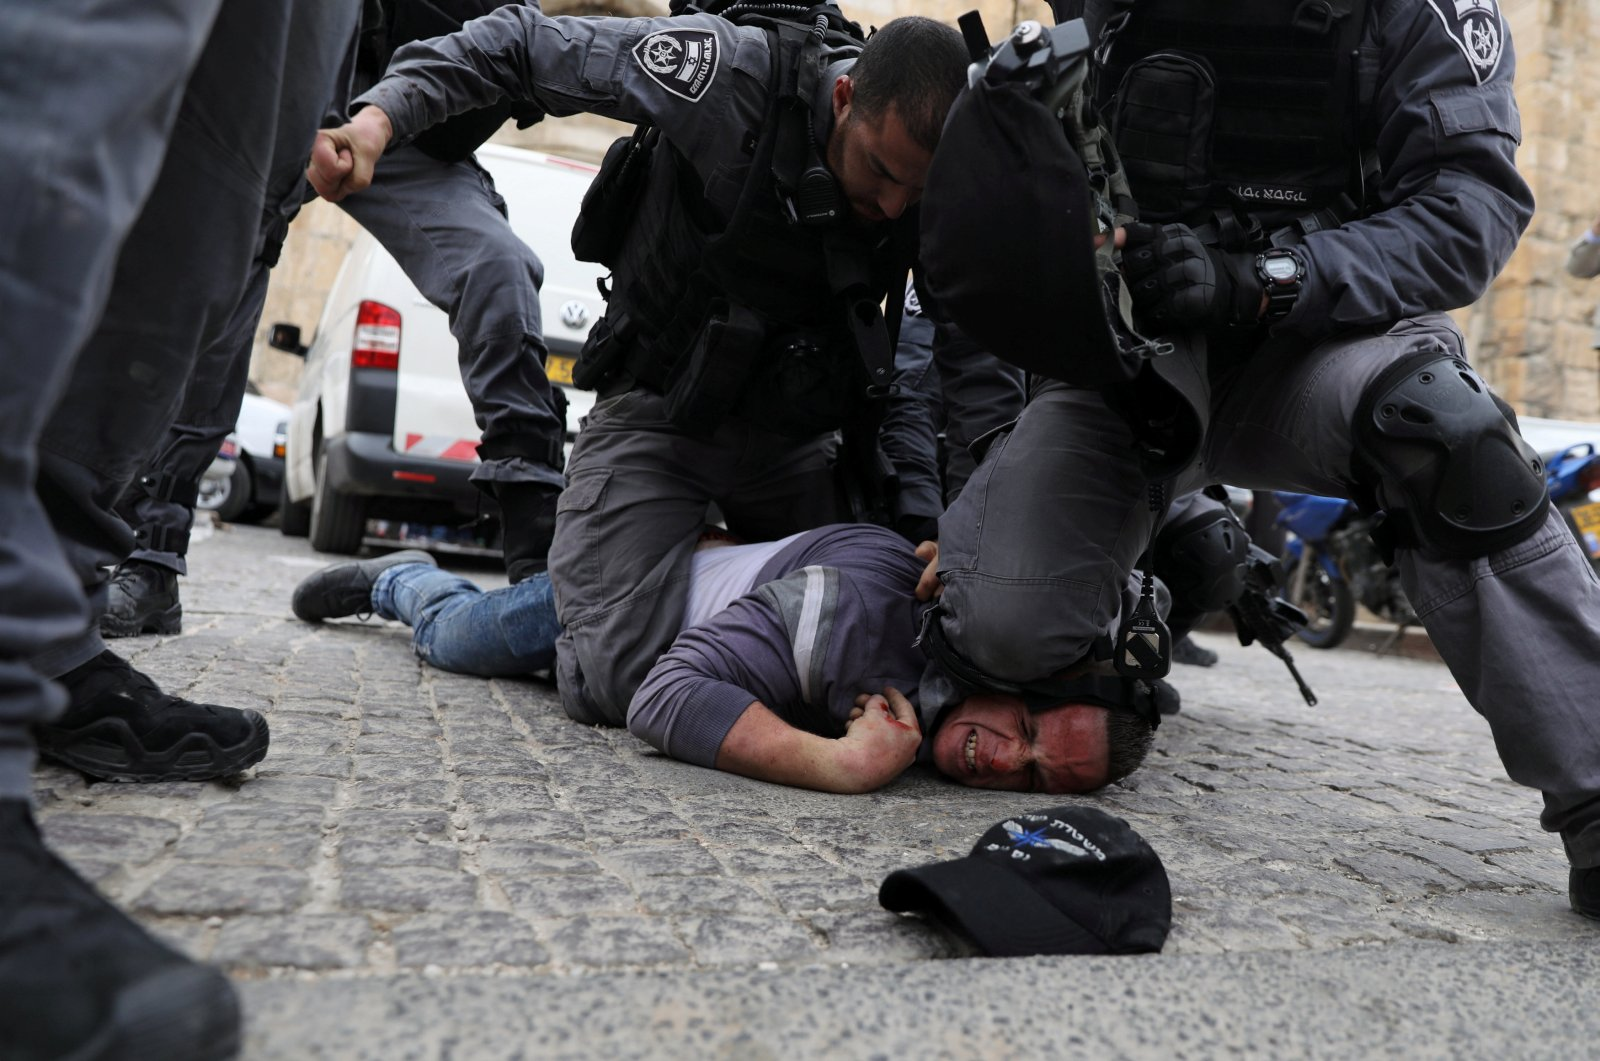 Israeli police officers detain a Palestinian protestor during scuffles outside the compound housing al-Aqsa Mosque in Jerusalem's Old City on March 12, 2019. (Reuters Photo)